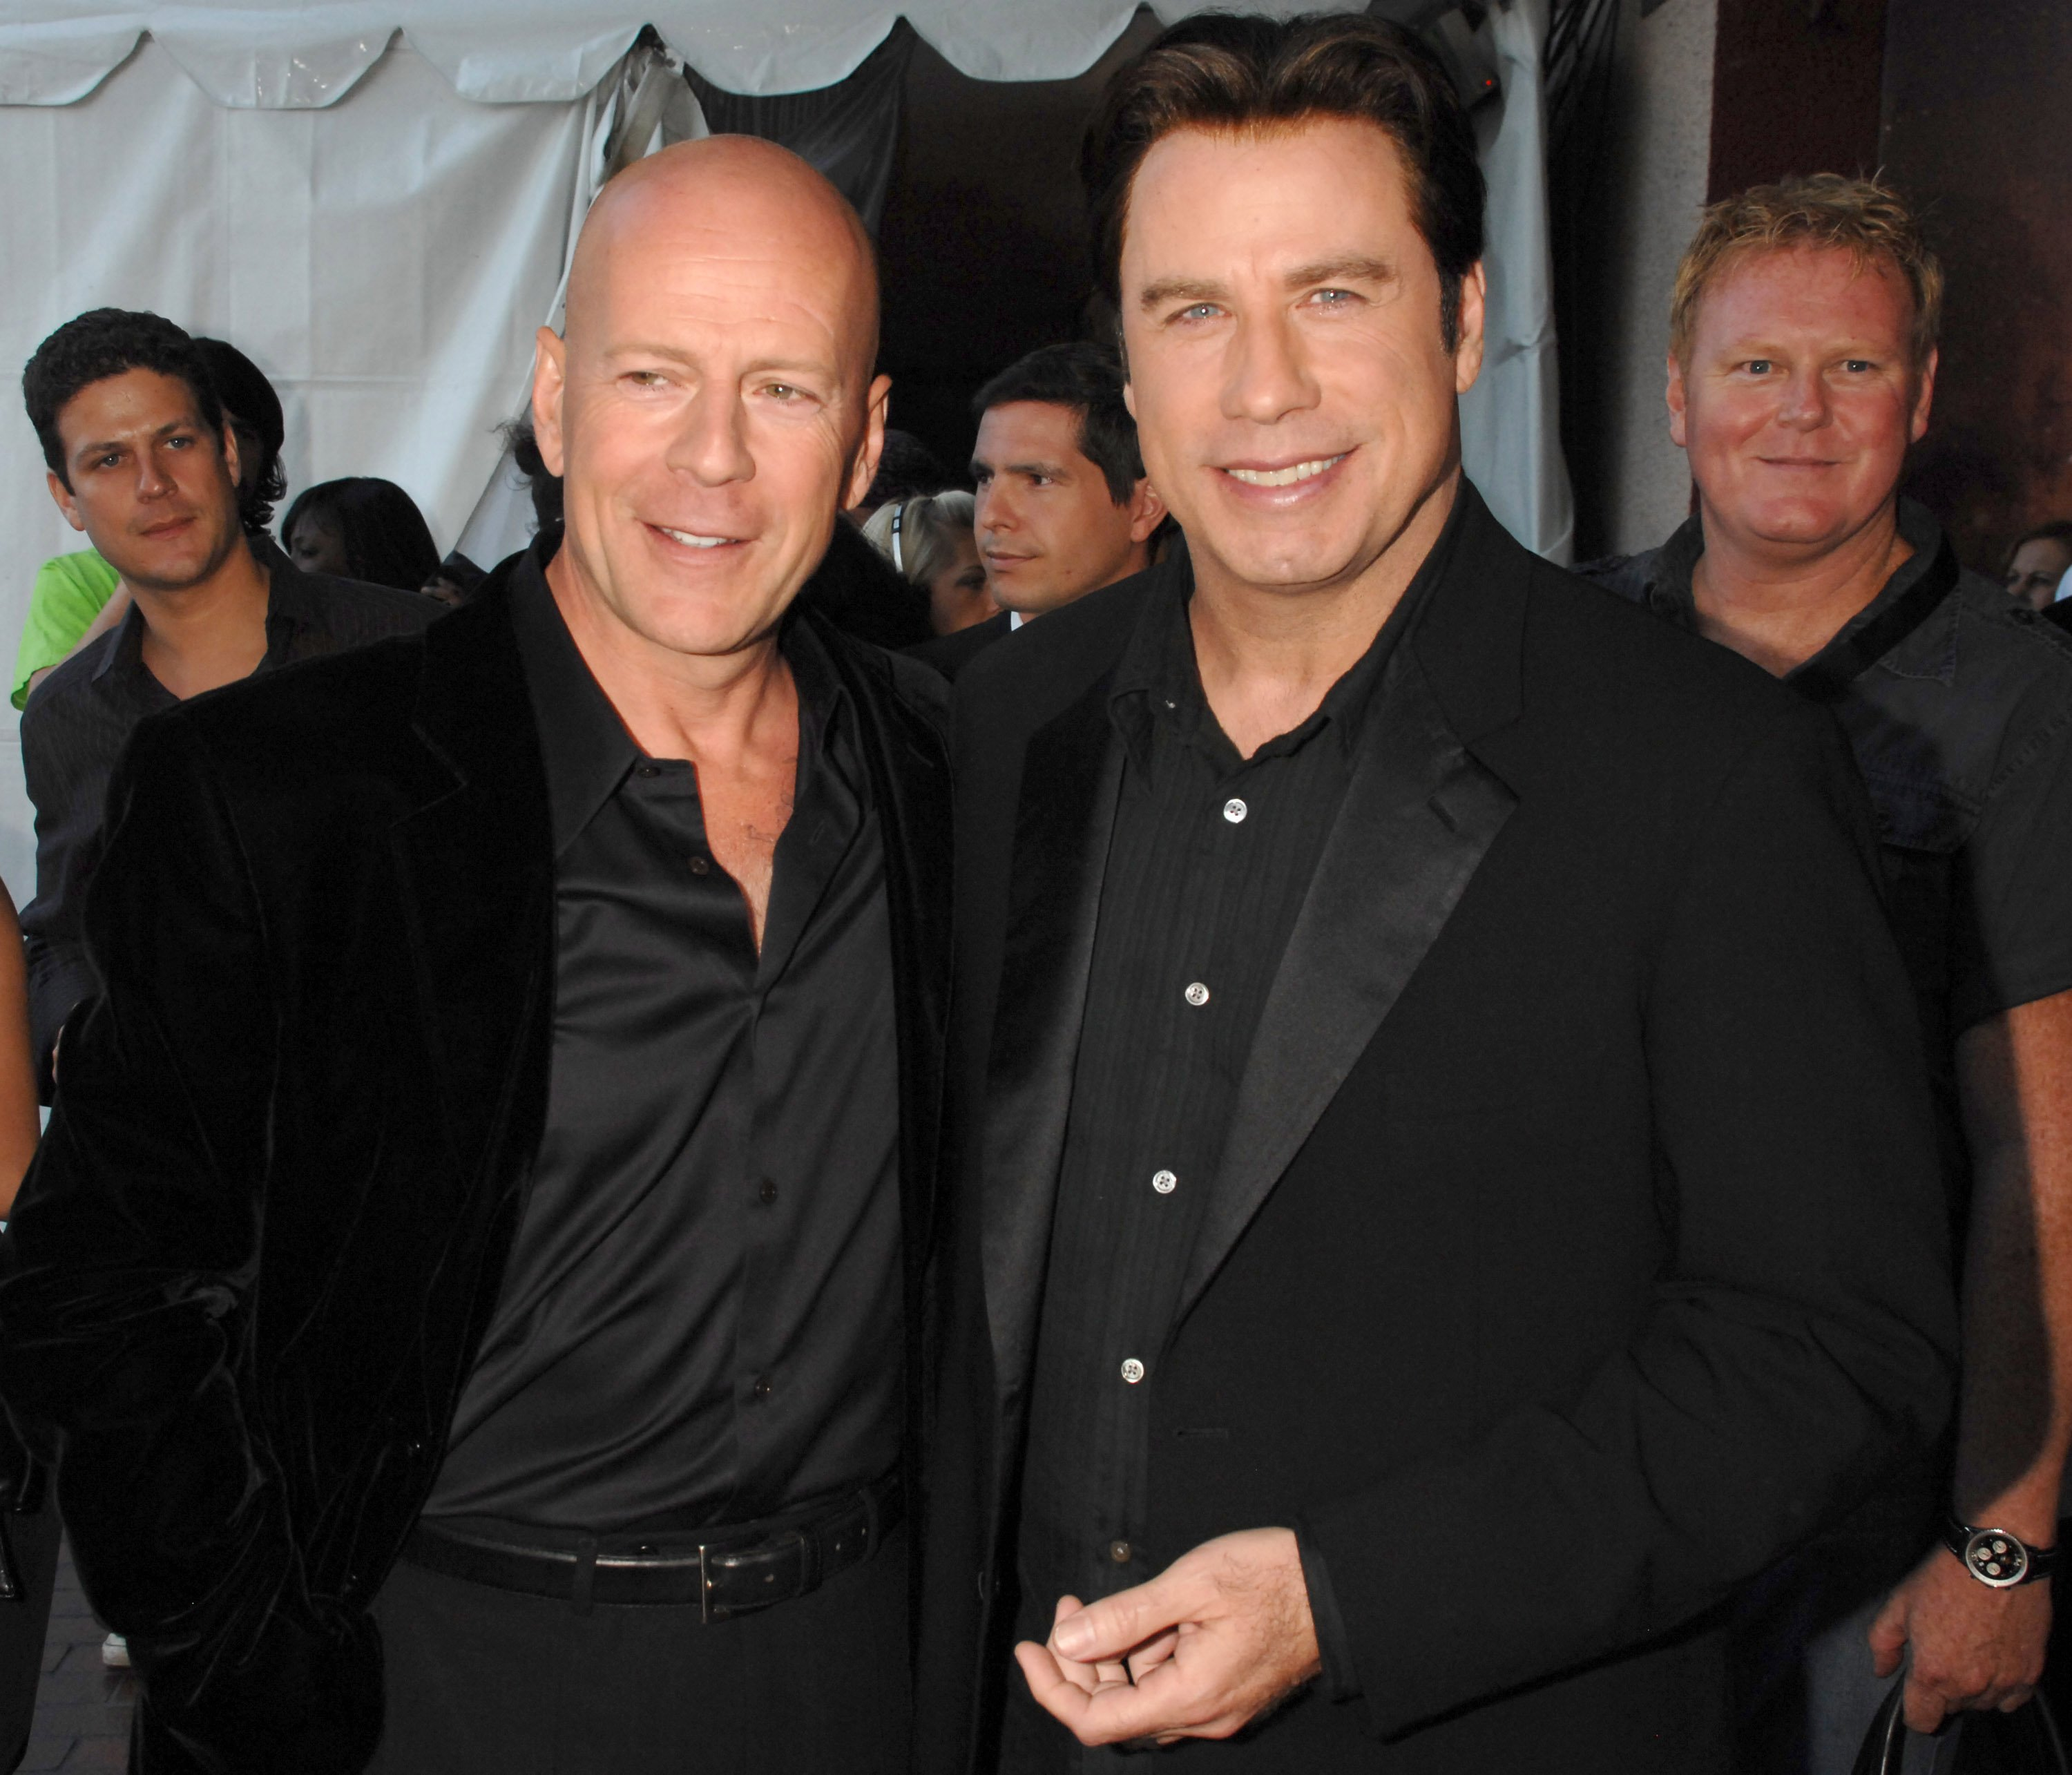 An undated image of Bruce Willis and John Travolta during 2007 MTV Movie Awards in Los Angeles, California | Photo: Getty Images